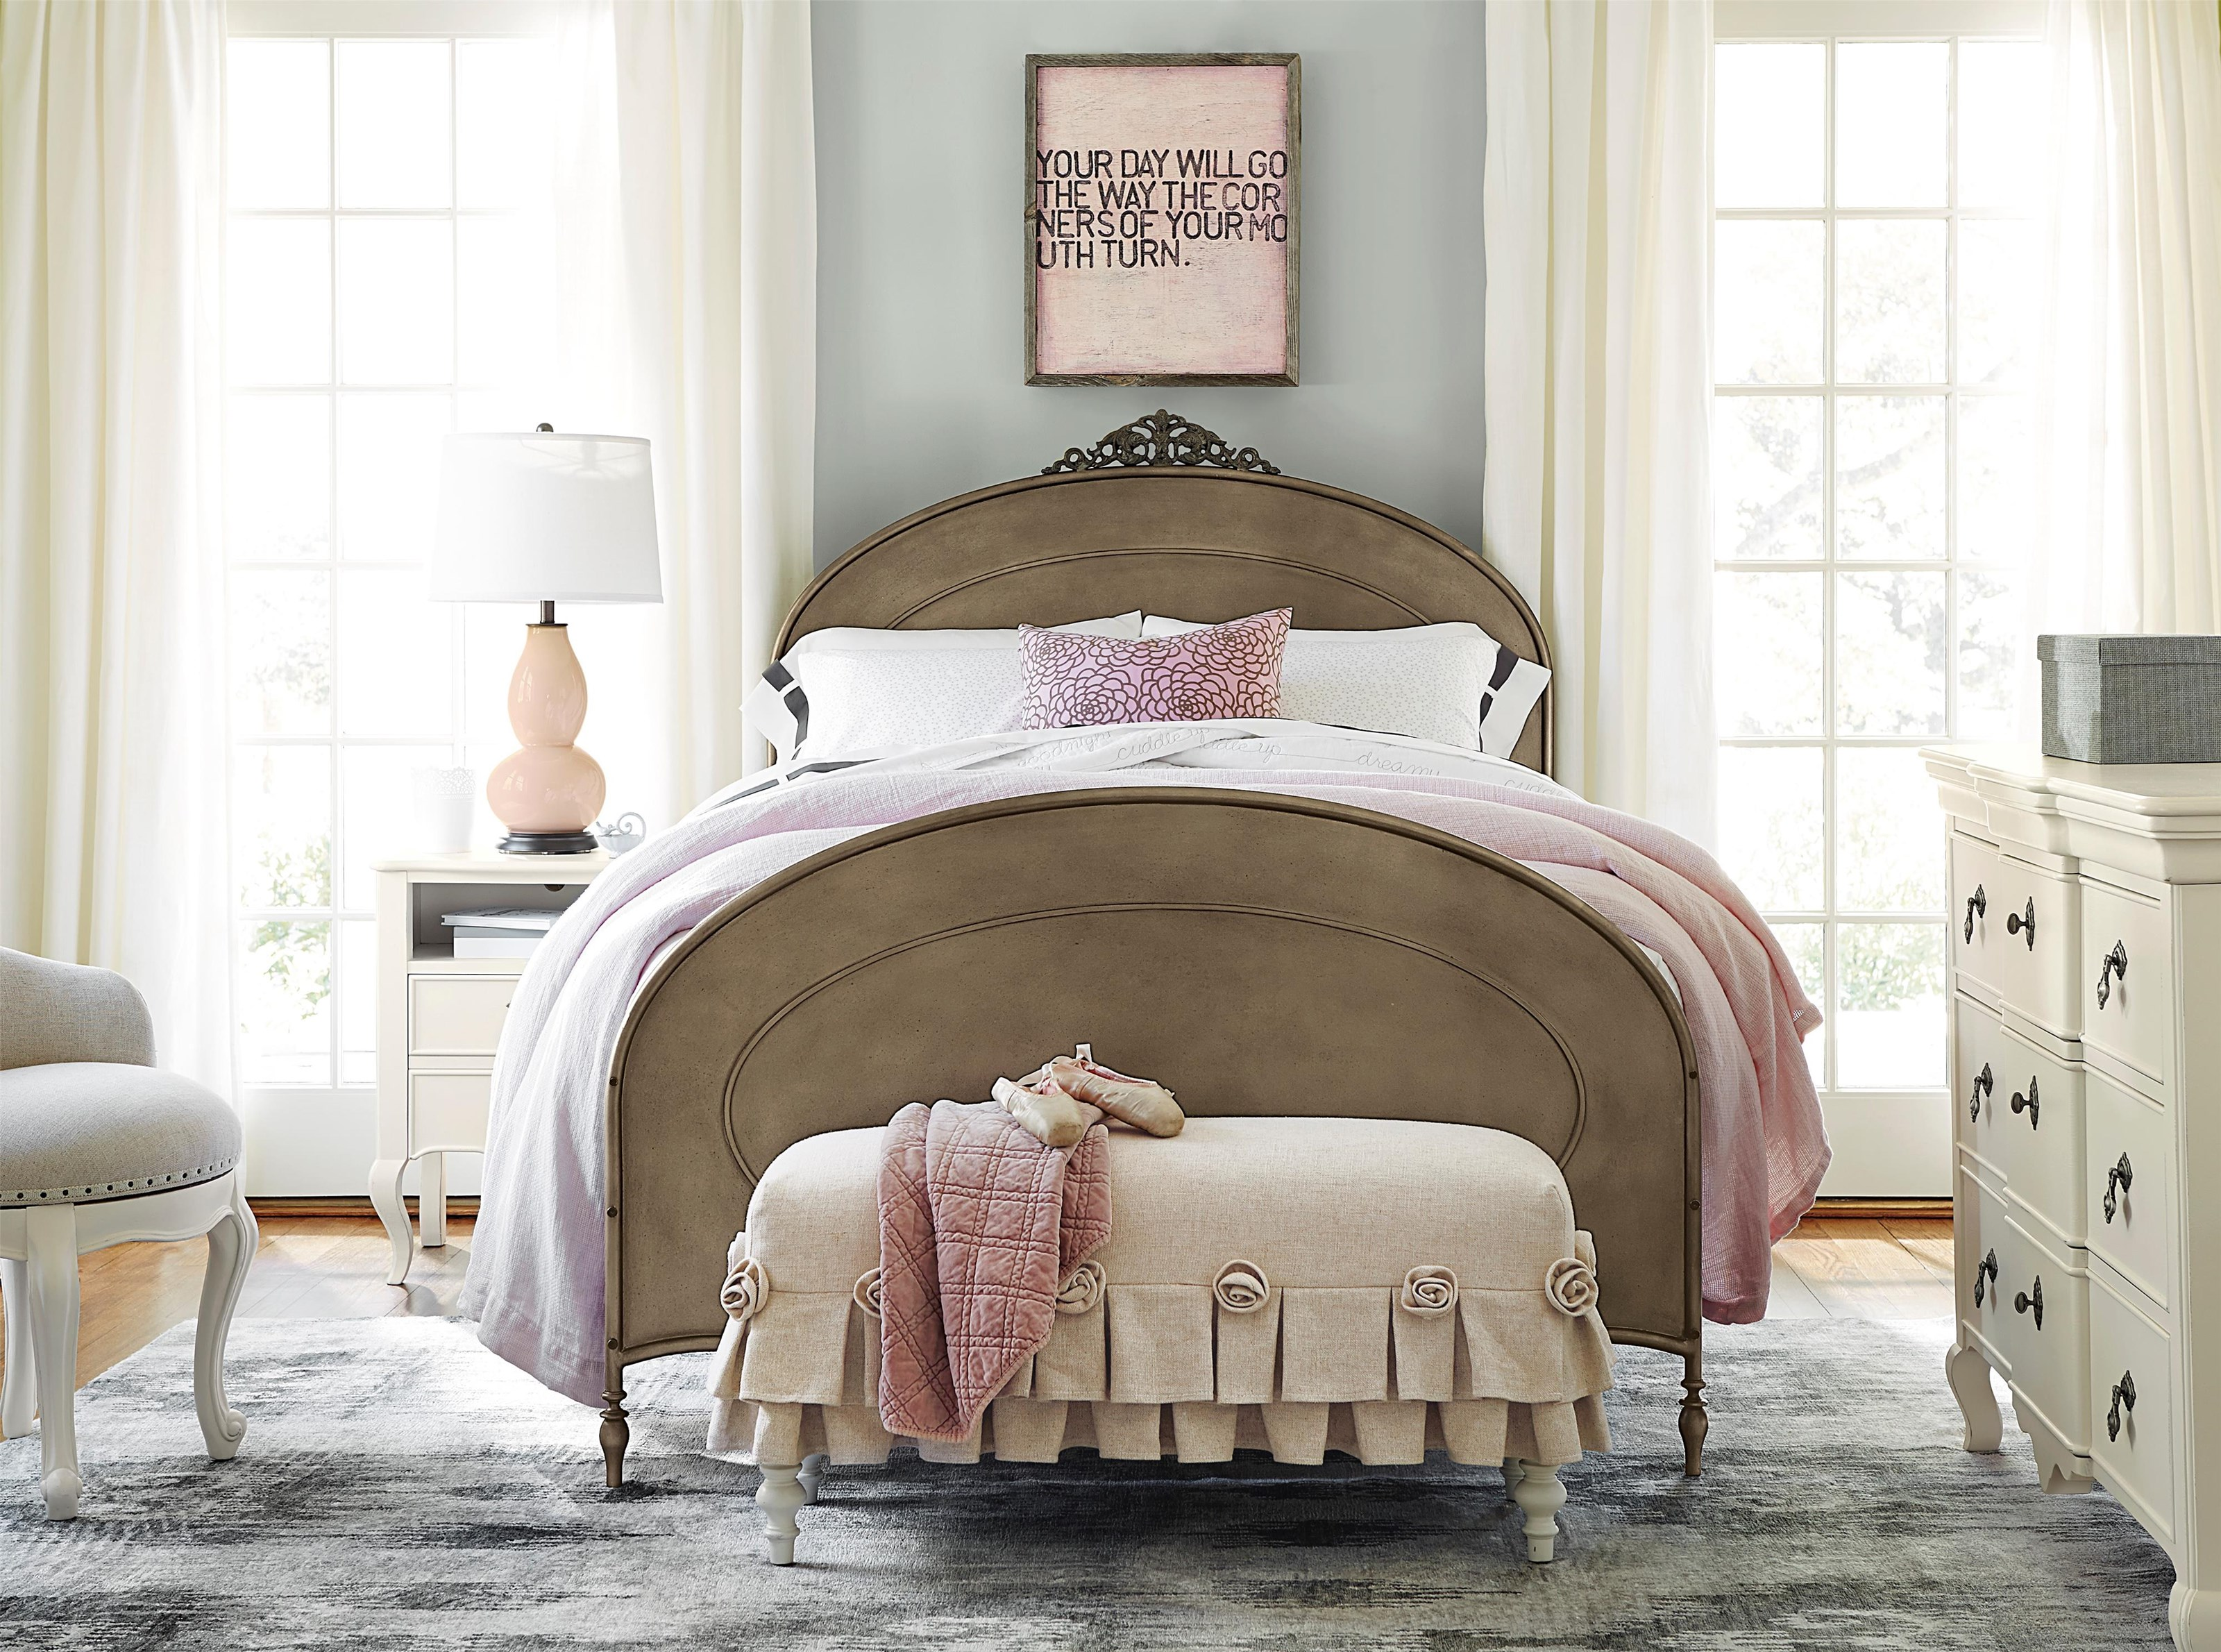 Morris Home Furnishings Penelope Penelope Twin Bed - Item Number: 615697050